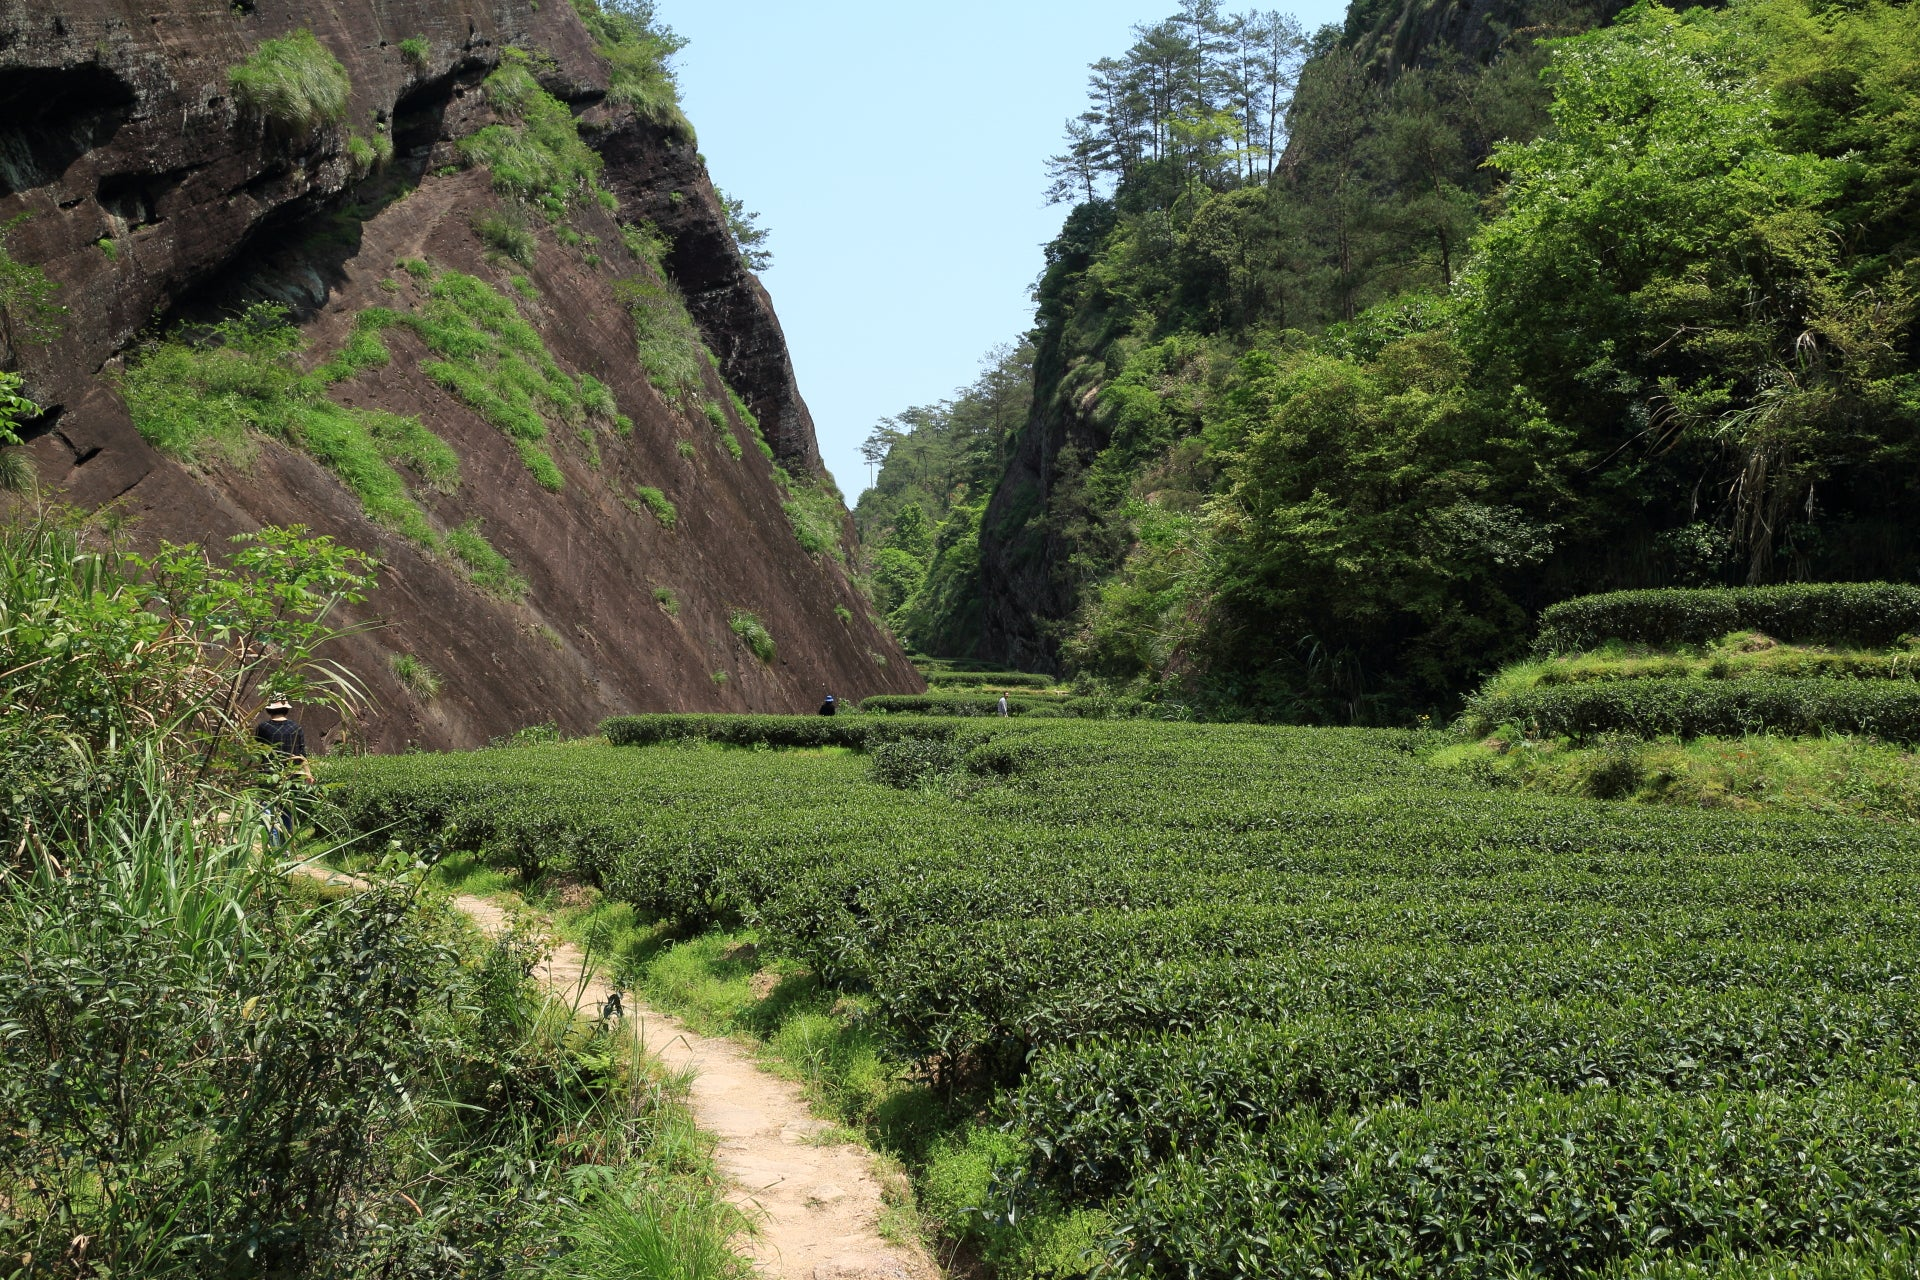 Tea bushes next to the dark cliff